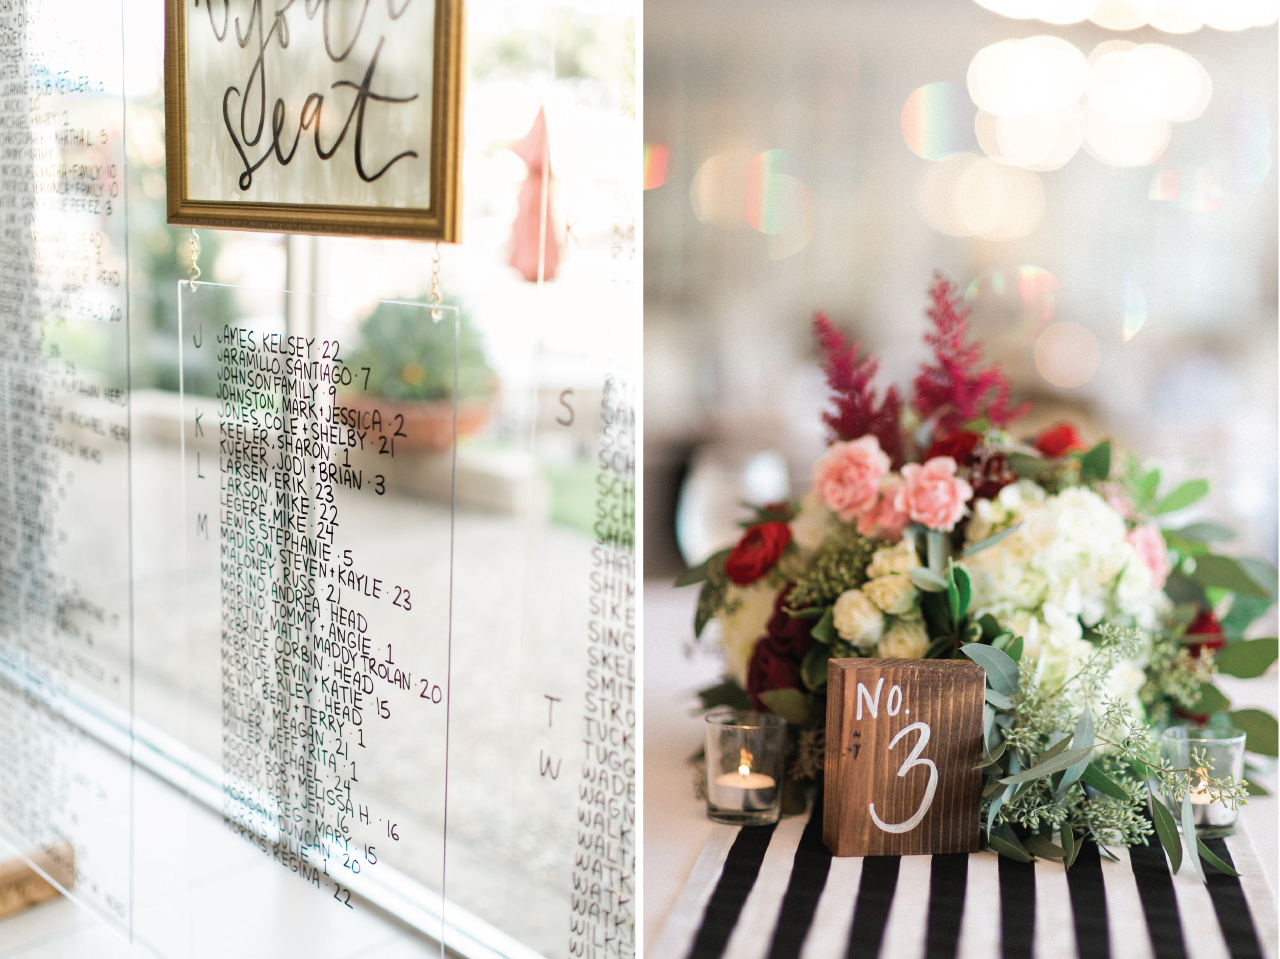 Simple wooden block table numbers; sleek and chic acrylic glass seating chart for wedding reception.